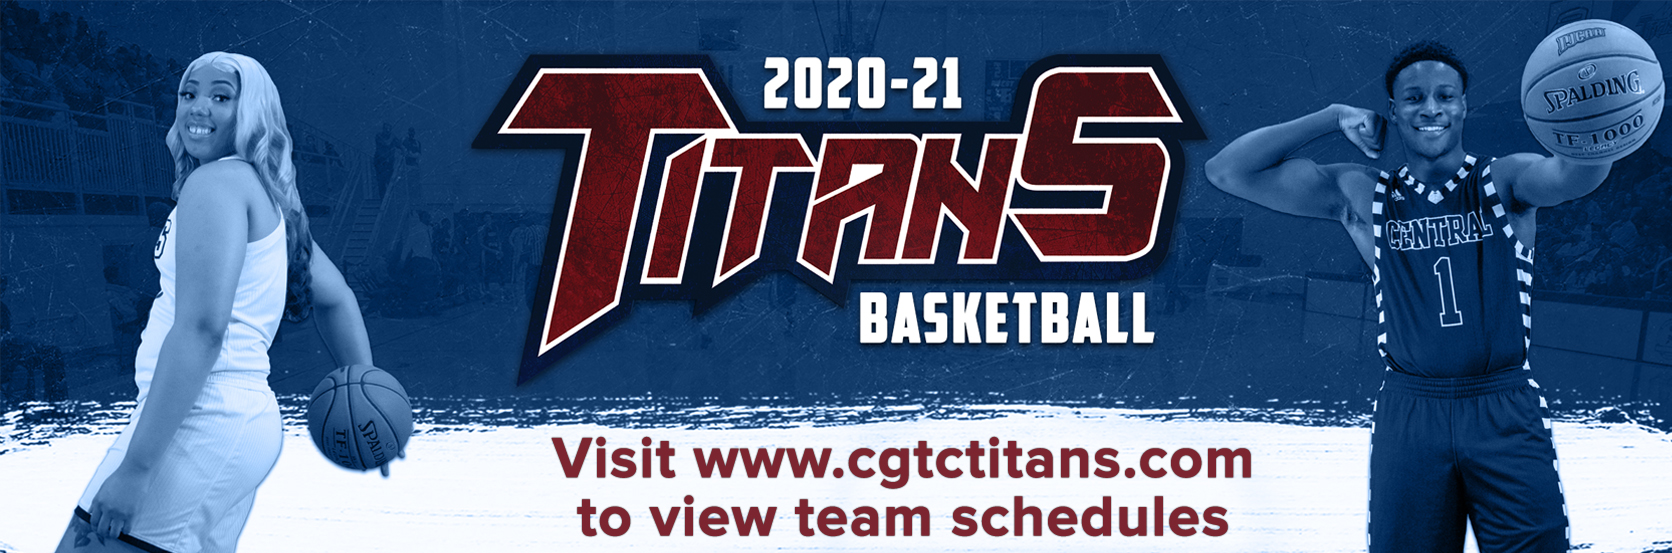 2020-21 Titans Basketball. Visit www.cgtctitans.com to view team schedules.